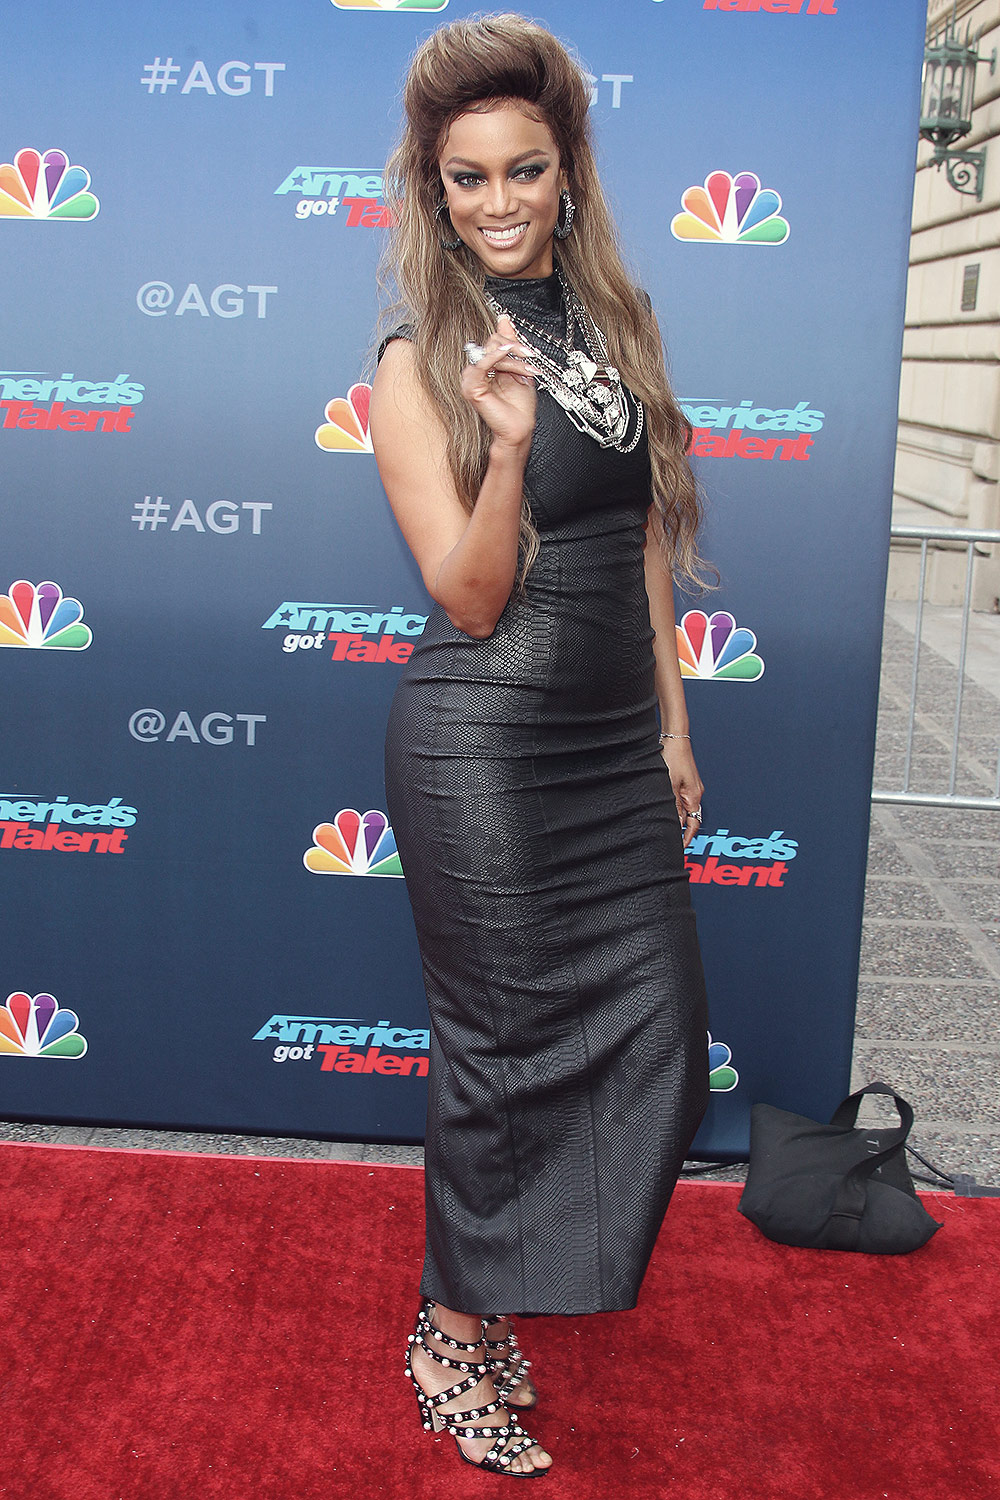 Tyra Banks attends America's Got Talent Red Carpet Kickoff